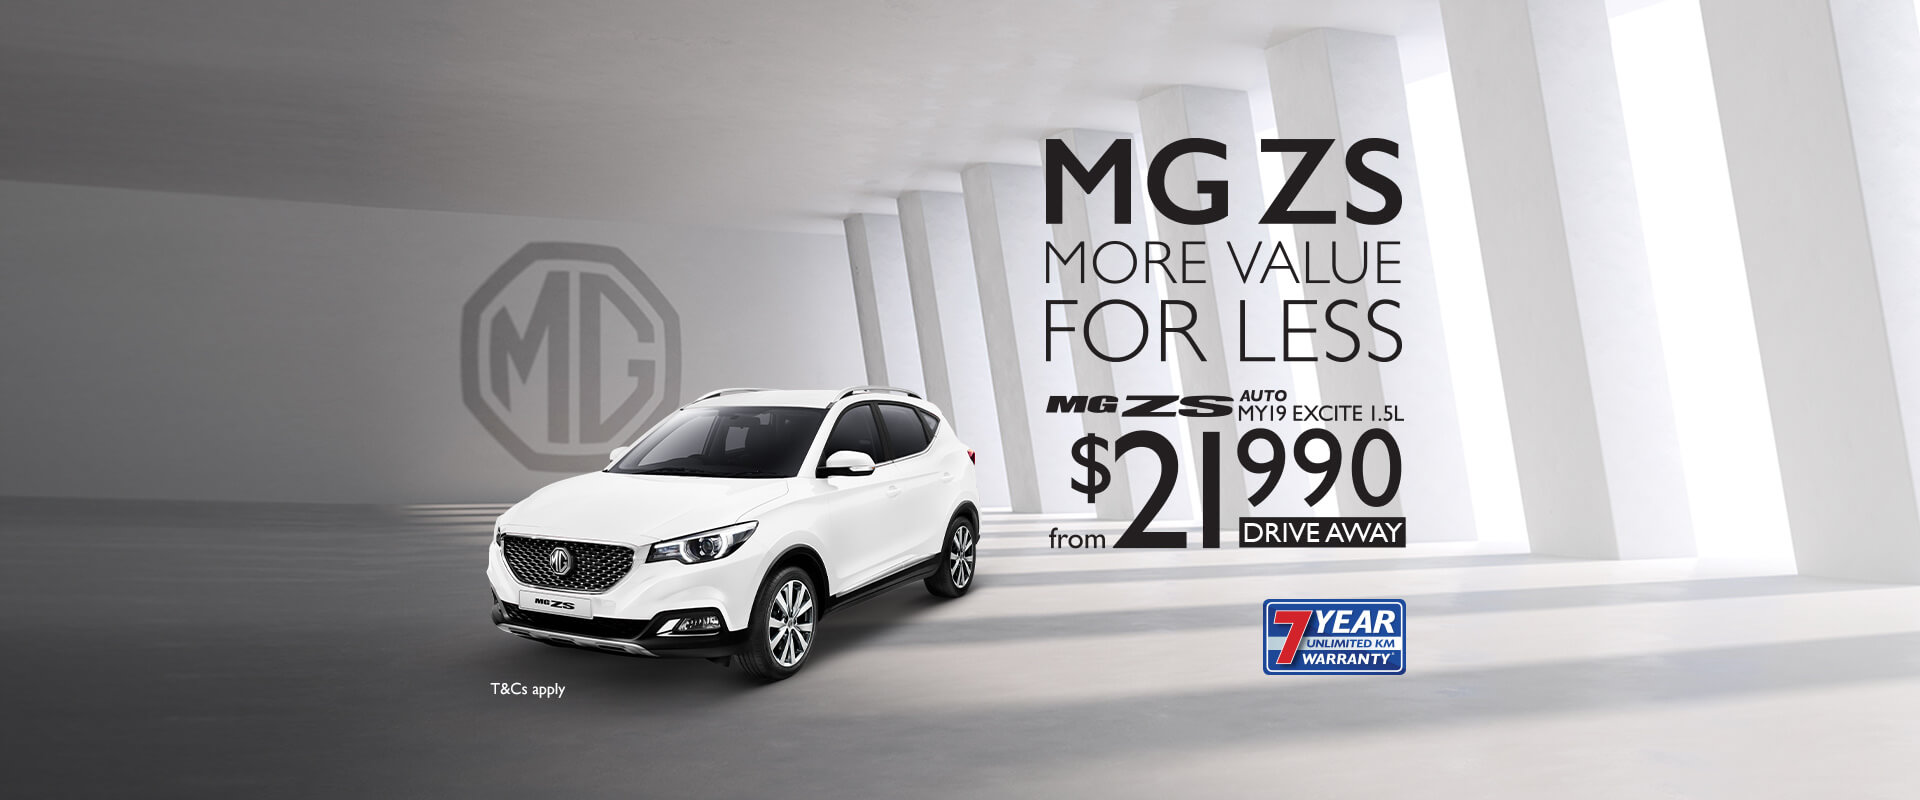 MG - More Value for Less